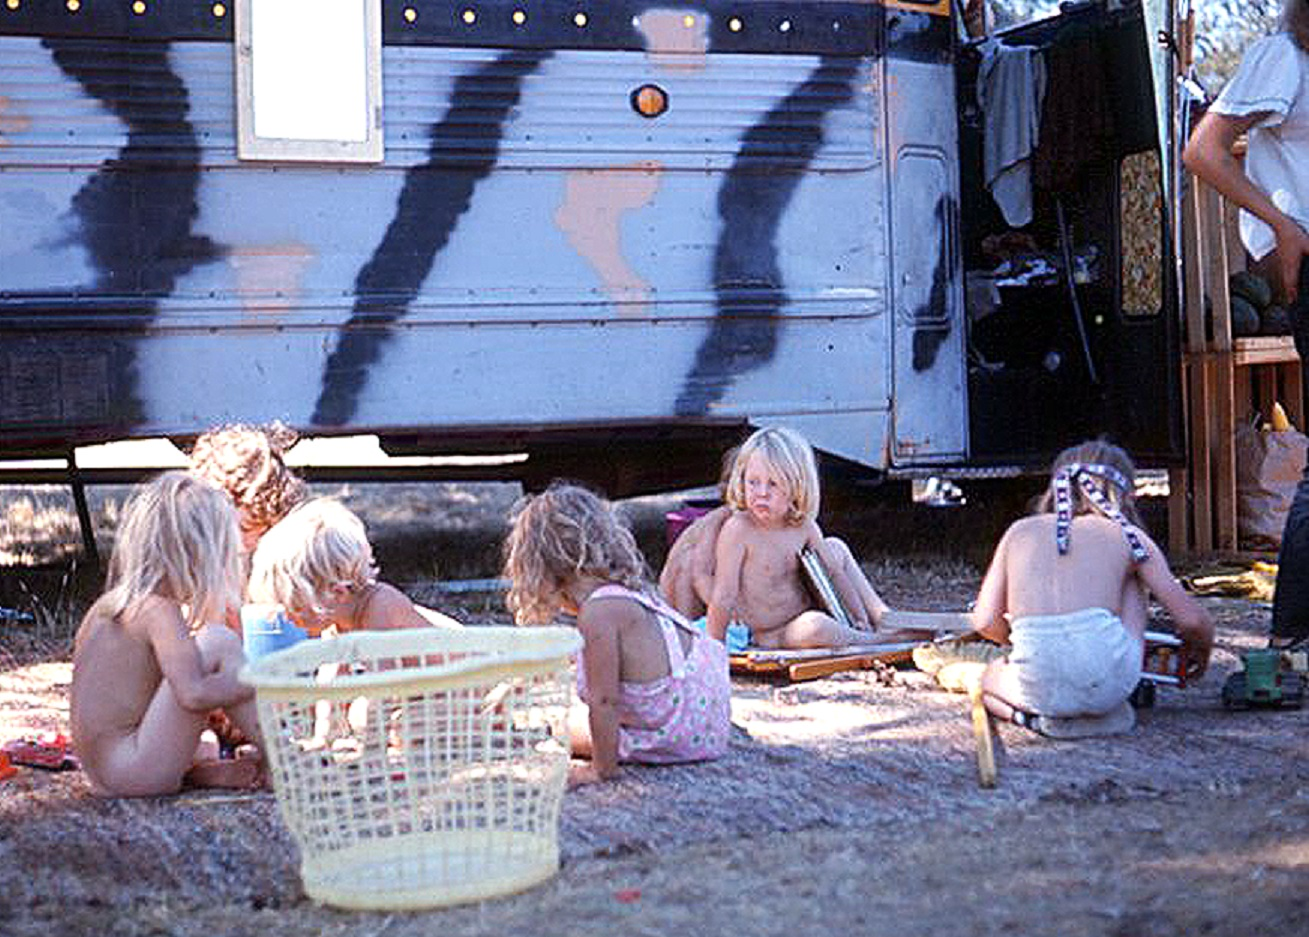 Kids Playing Next to Bus - Vortex 1 - 1970 - McIver State Park